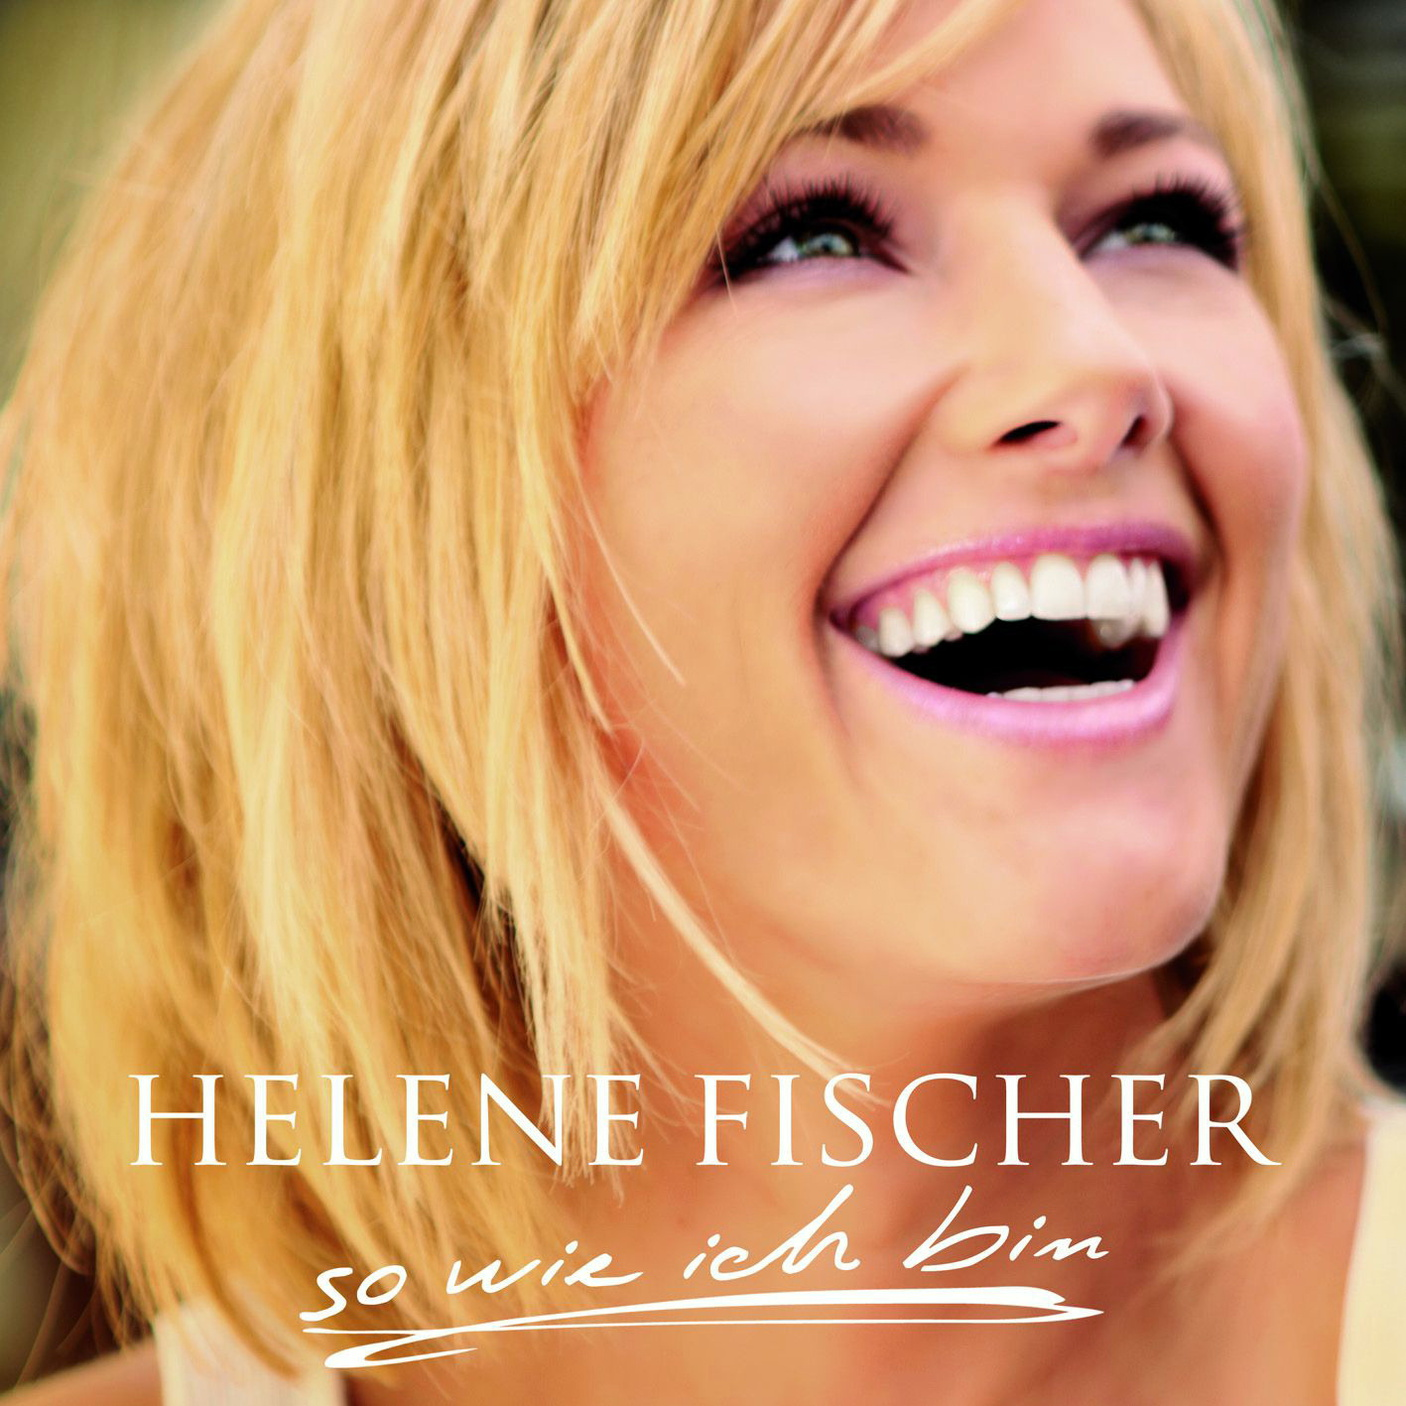 so wie ich bin helene fischer cd shop f r cd dvd blu ray filme. Black Bedroom Furniture Sets. Home Design Ideas